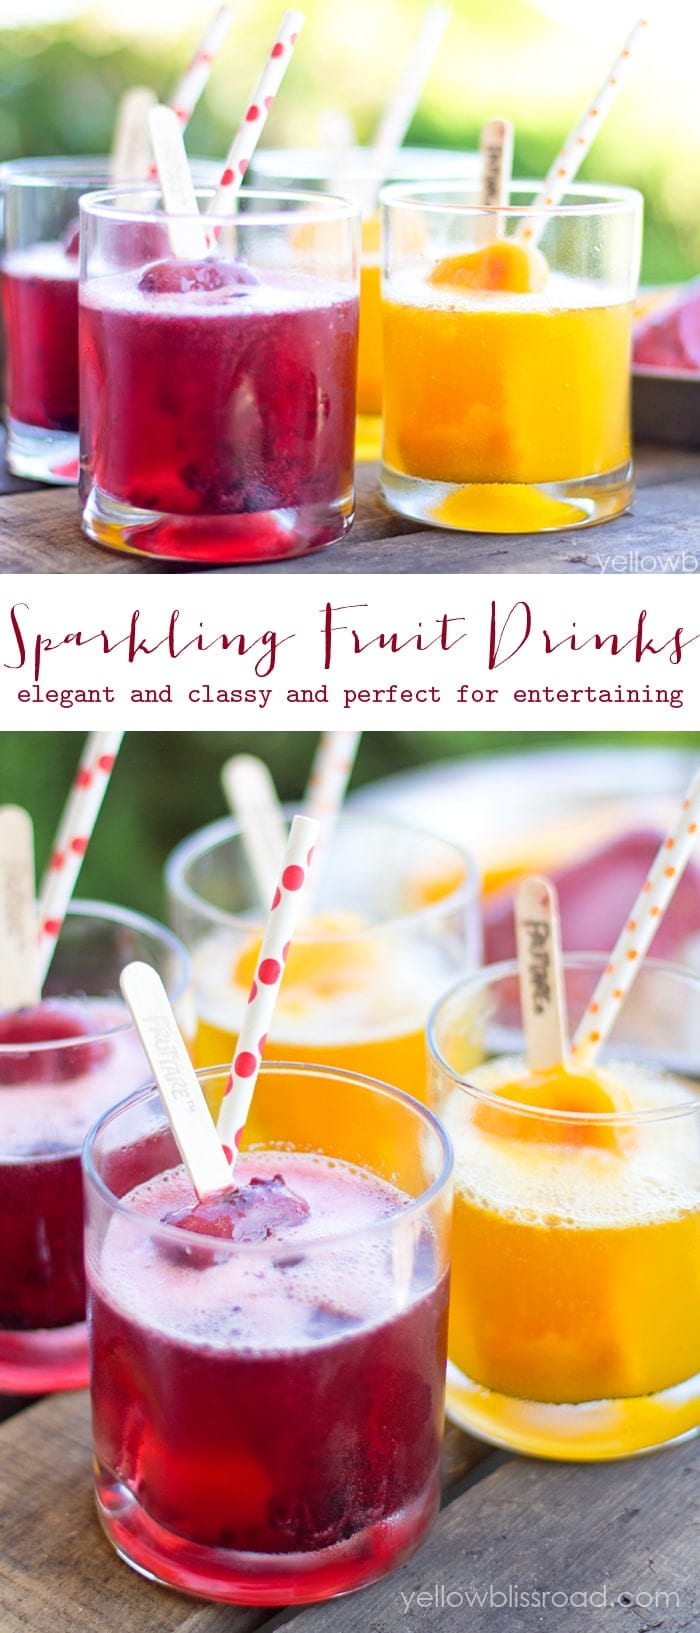 Sparkling Fruit Drinks - Elegant and classy and perfect for summer entertaining!